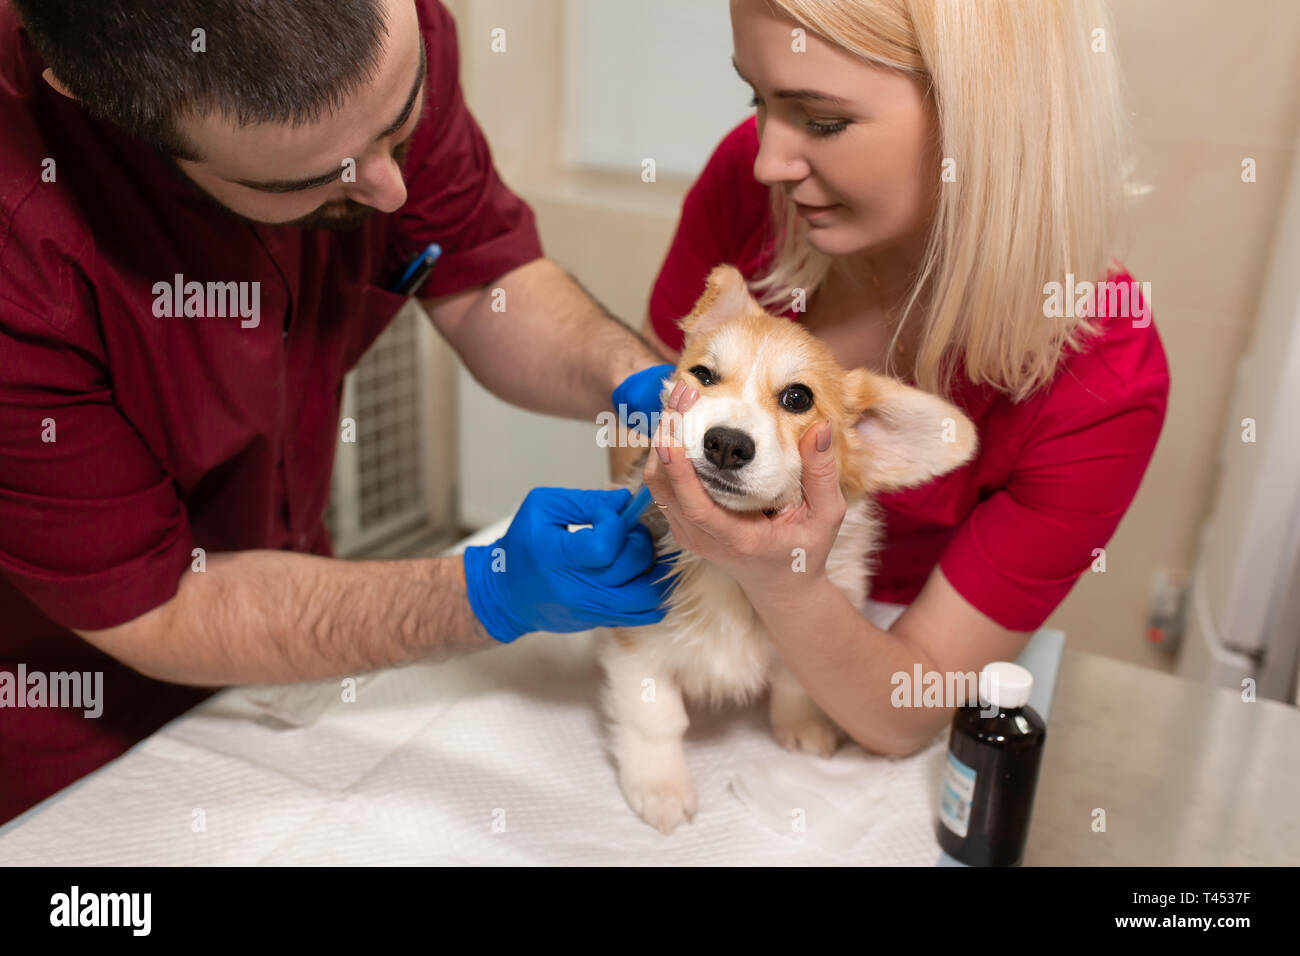 Veterinary doctors exam little corgi dog in manipulation room of pet clinic. Pet health care. - Stock Image